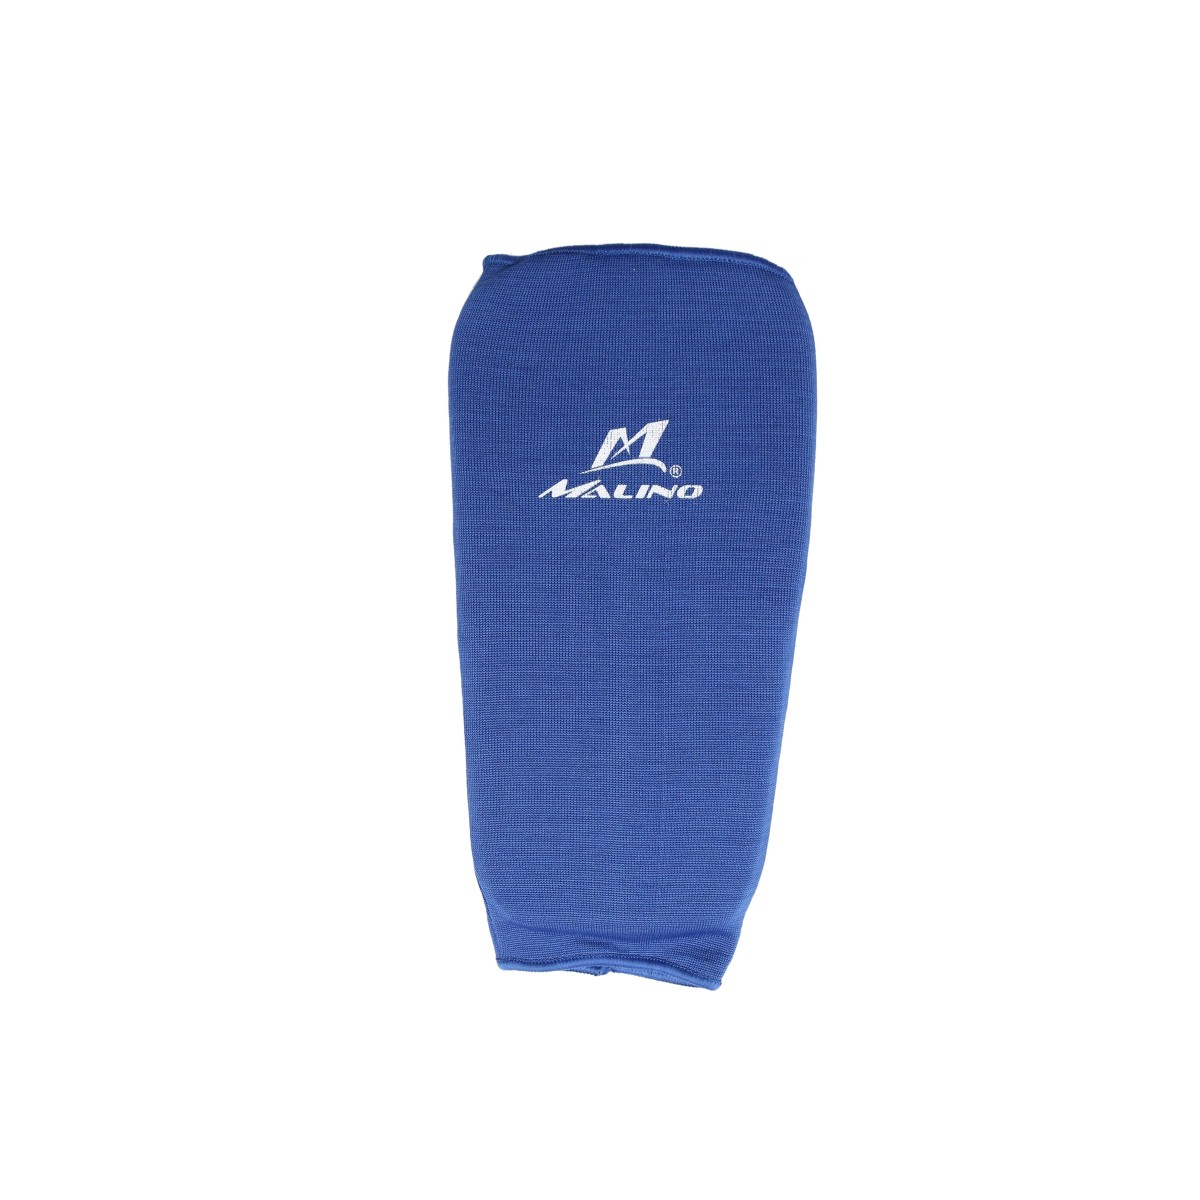 Malino Padded Elasticated Hosiery Shin Pad Blue